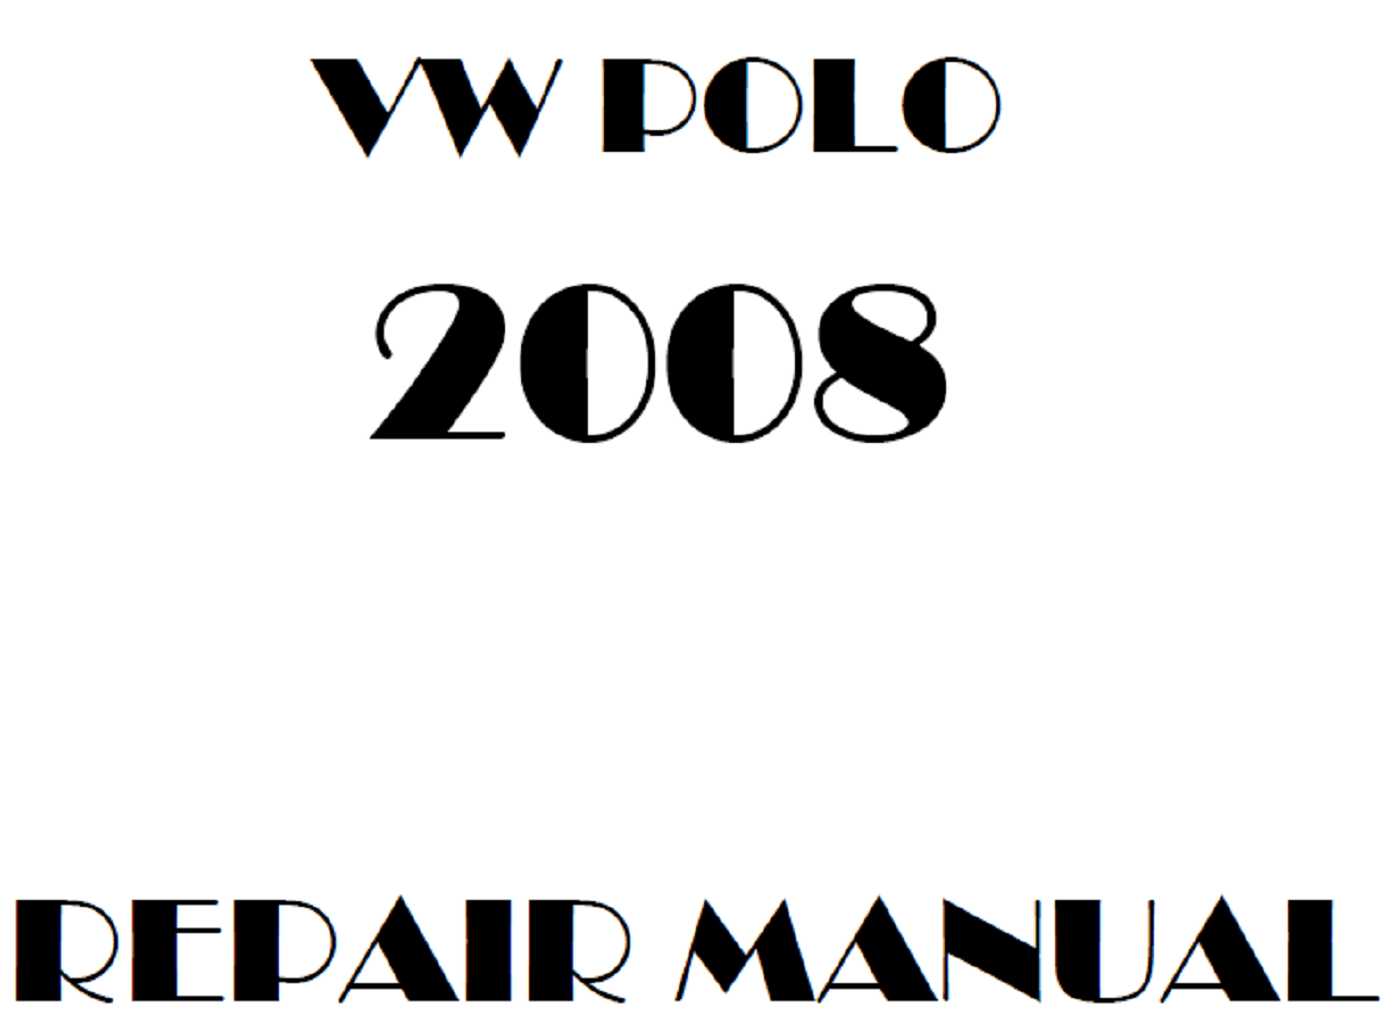 2008 Volkswagen Polo repair manual